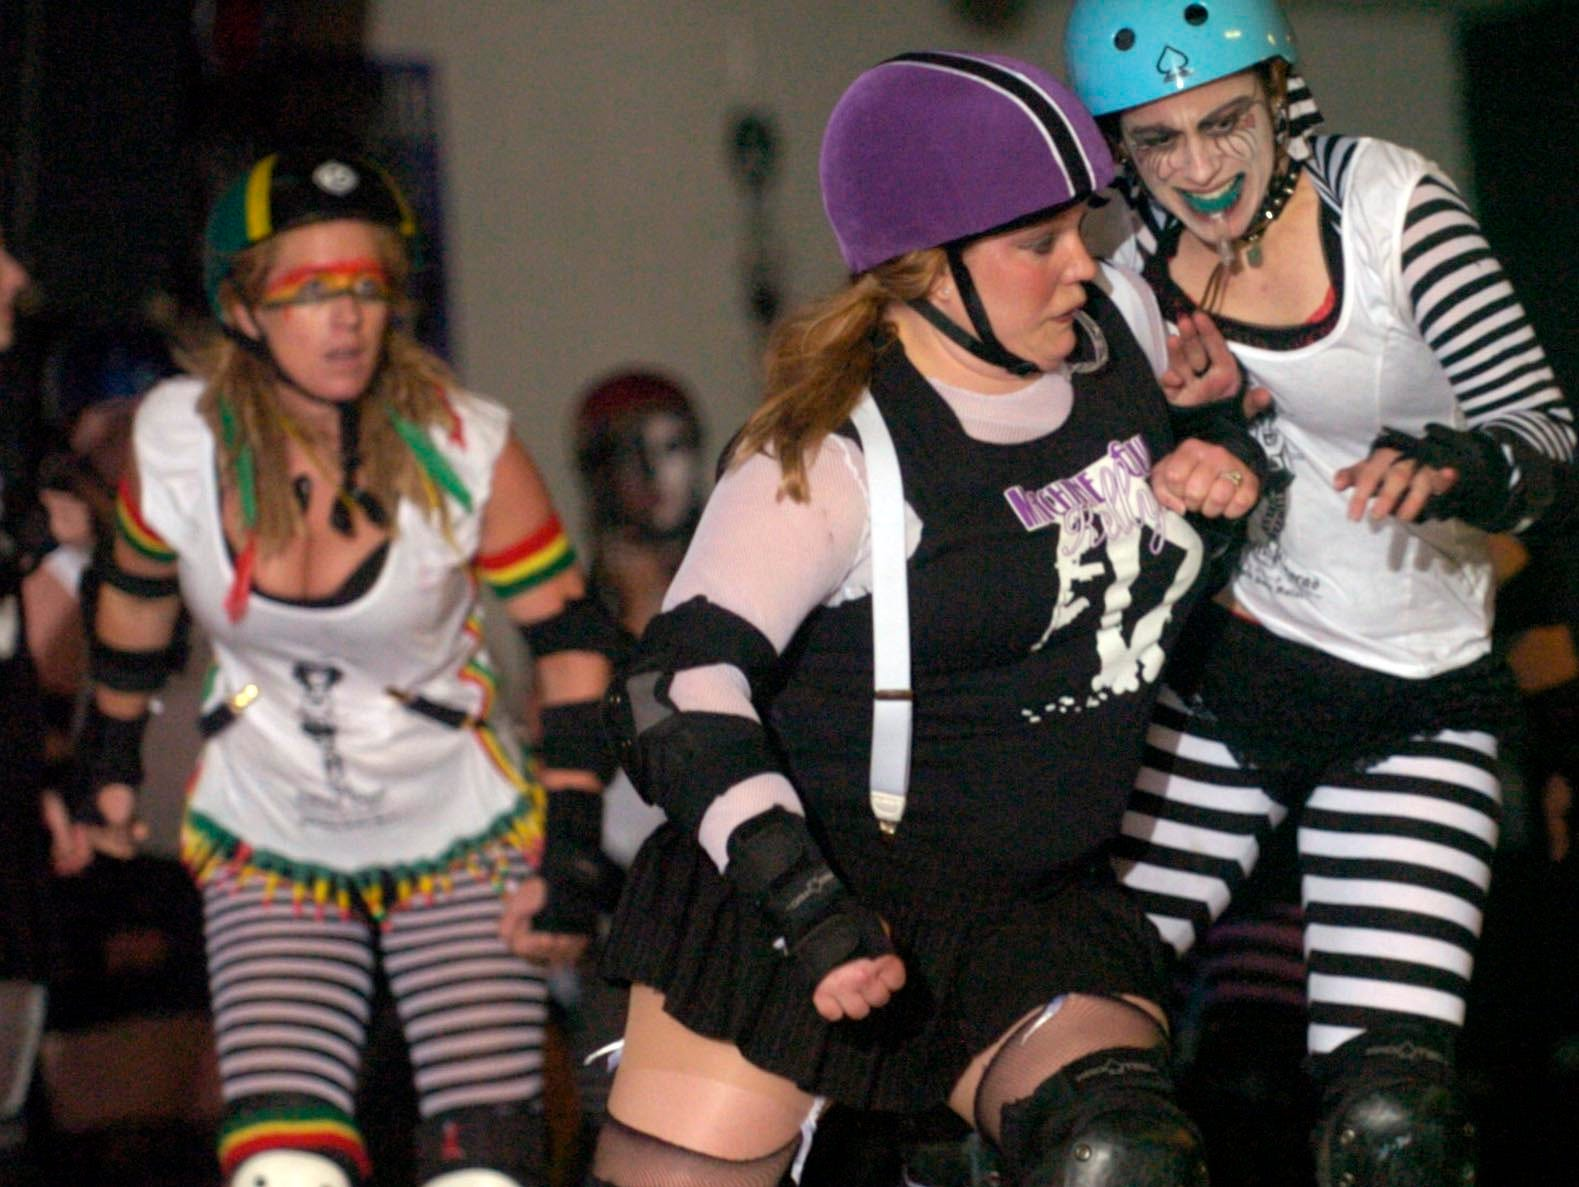 The Hard Knox Roller Girls. 2006